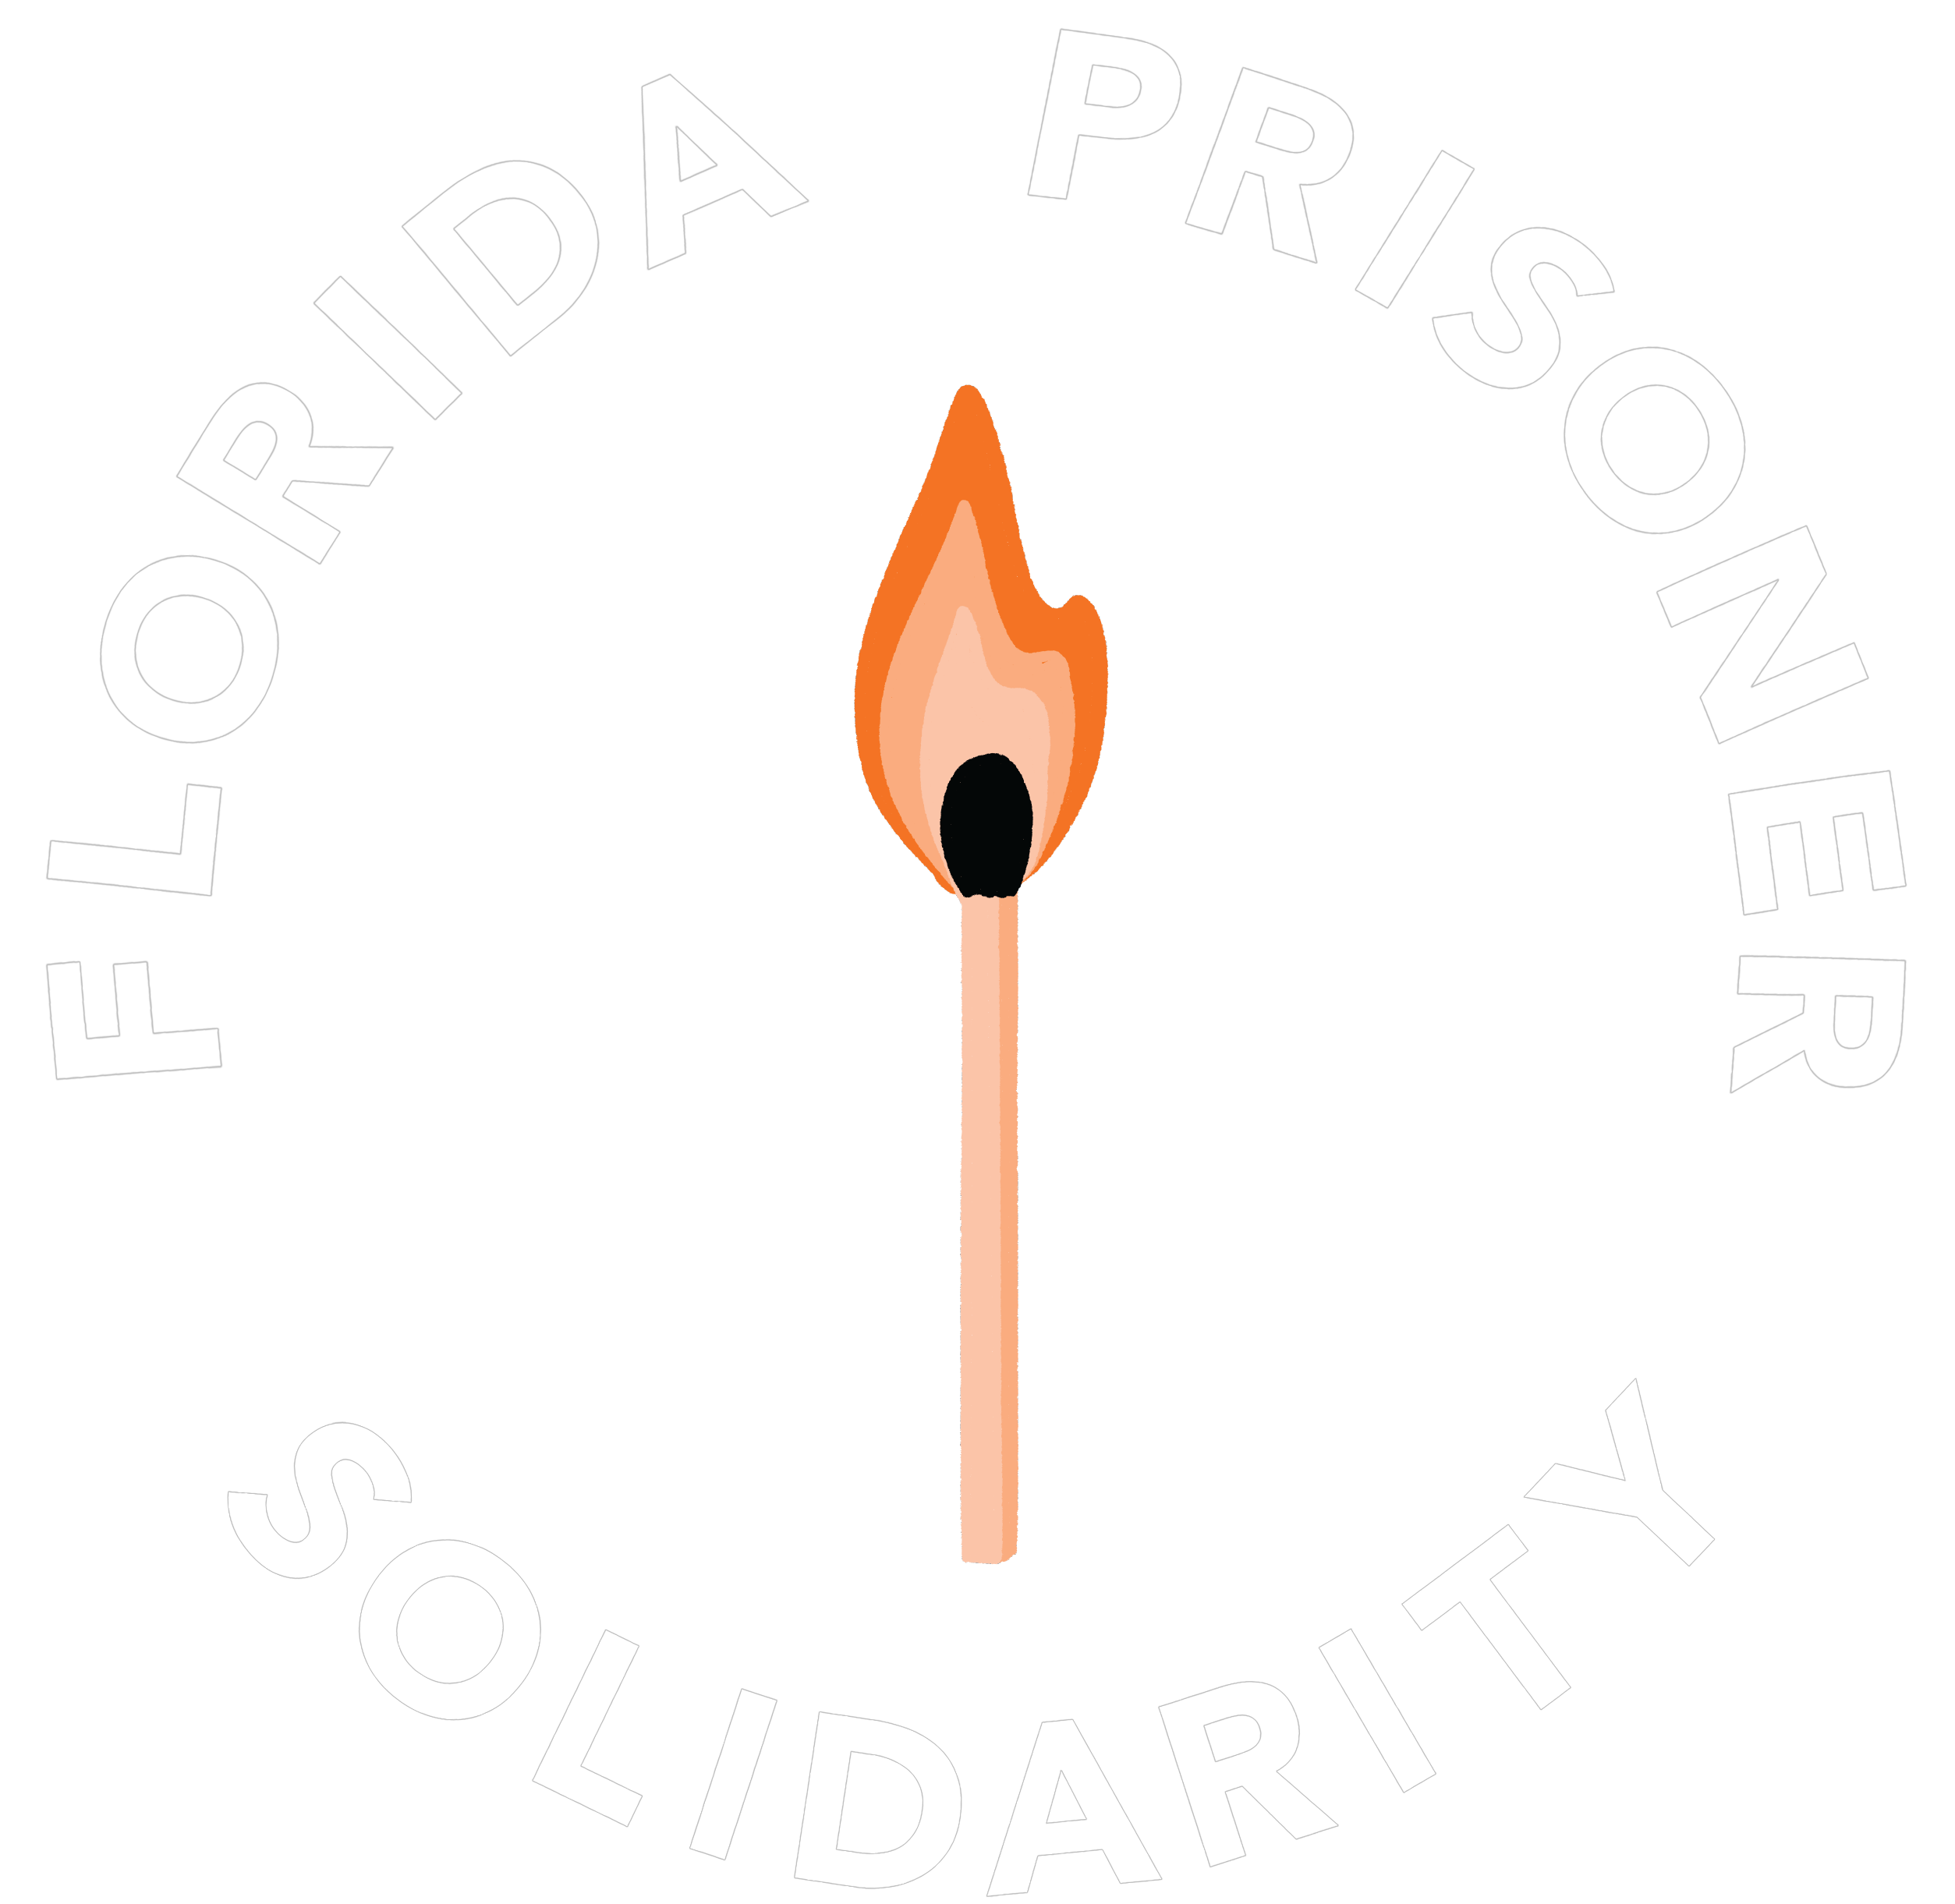 Florida Prisoner Solidarity